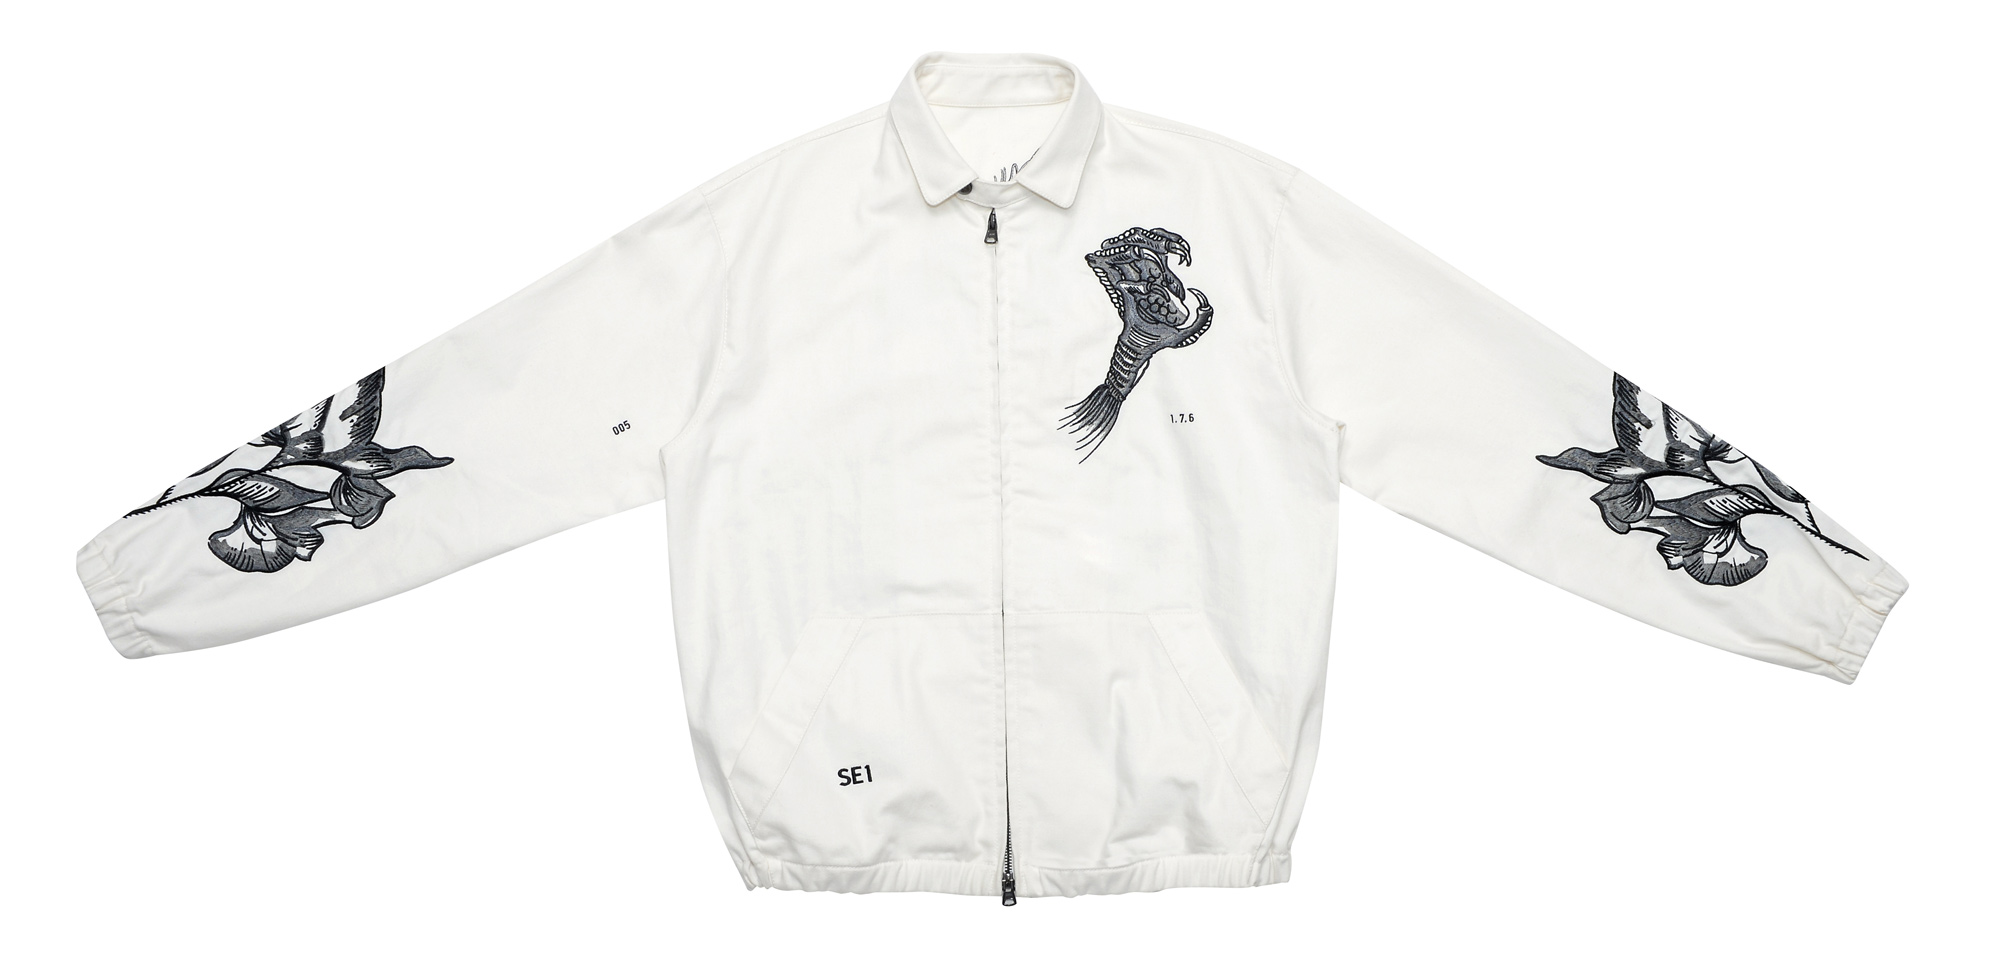 Ron Wan: Textile design for SAAM1. Dragon and Sweet Pea Embroidery henley shirt and souvenir jacket. Only at Lane Crawford